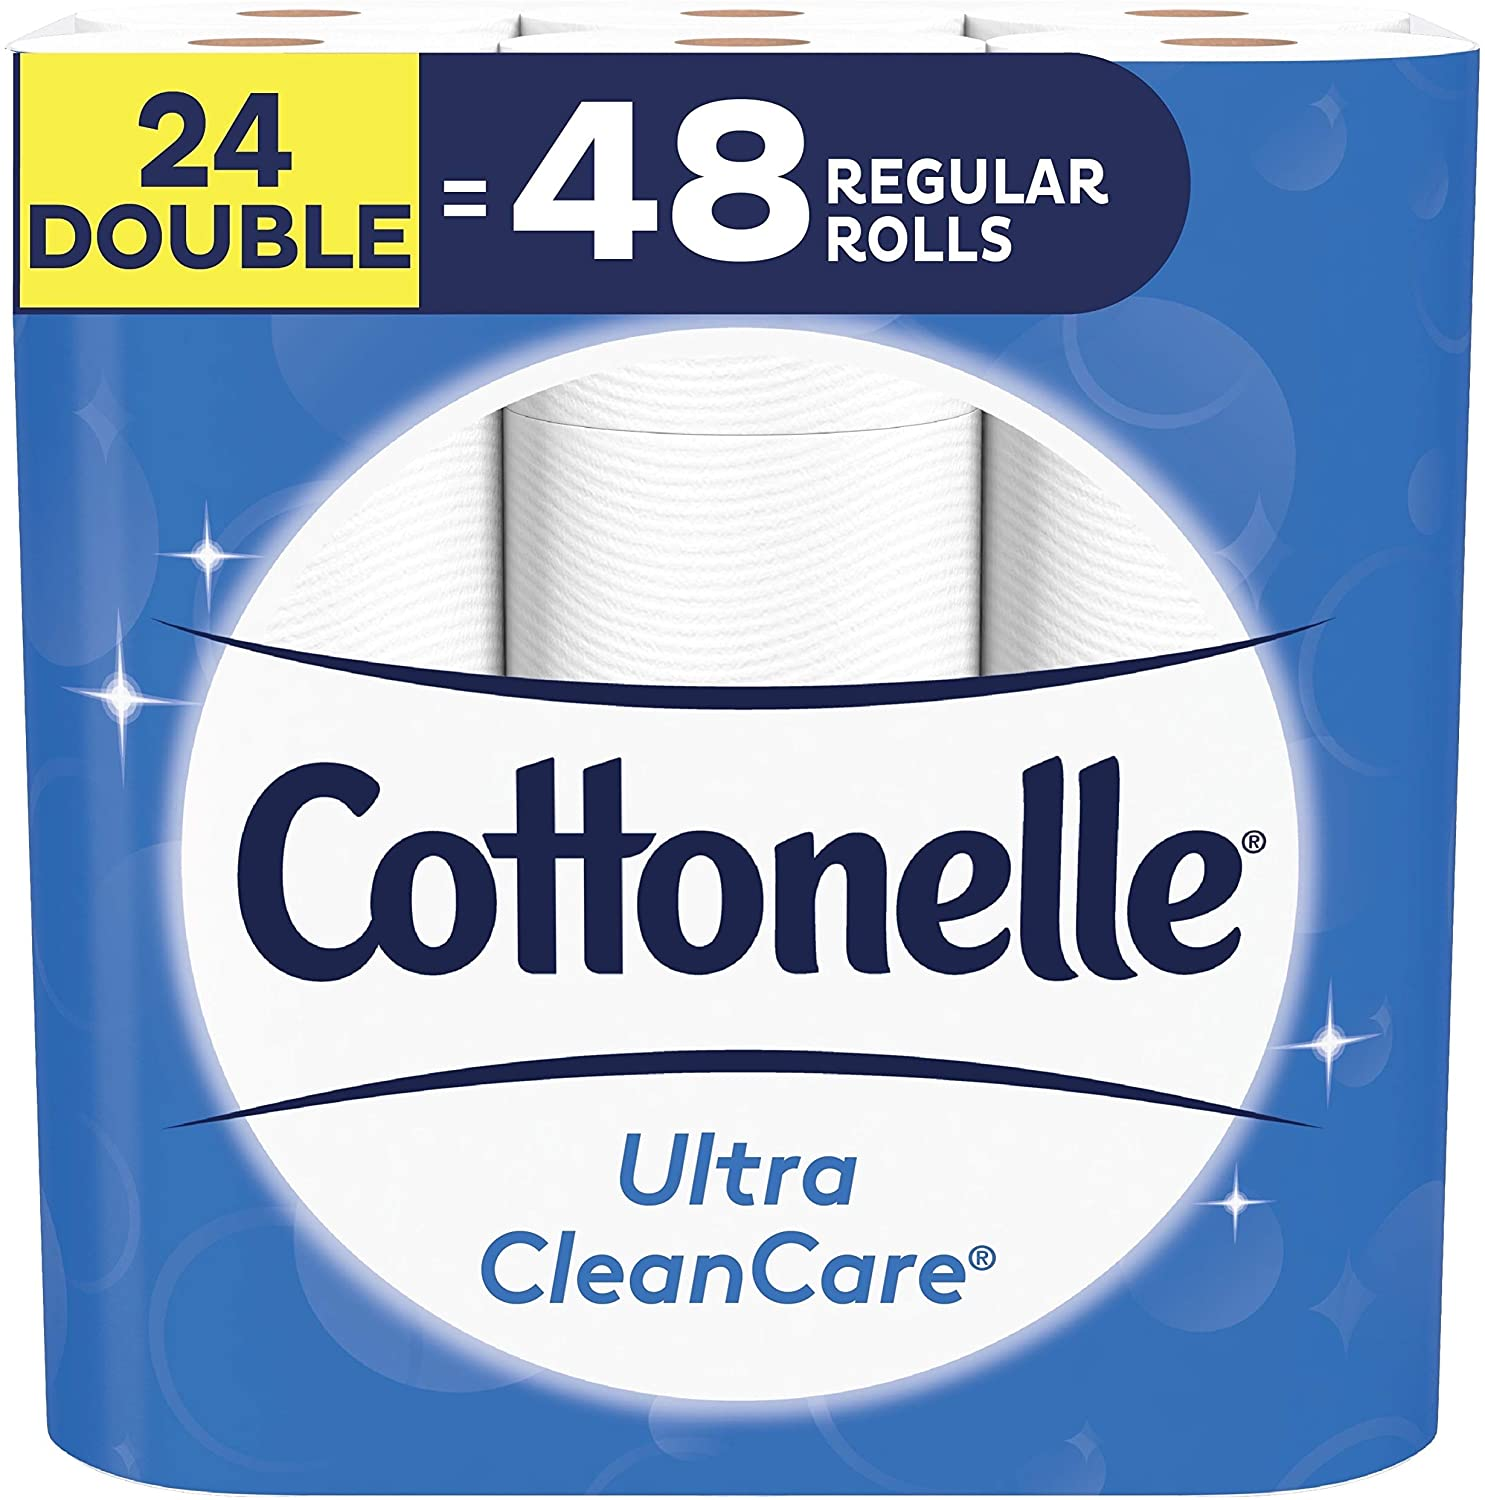 cottonelle-comfort-toilet-paper-24-large-rolls-equivalent-to-48-rolls-2021-3-14